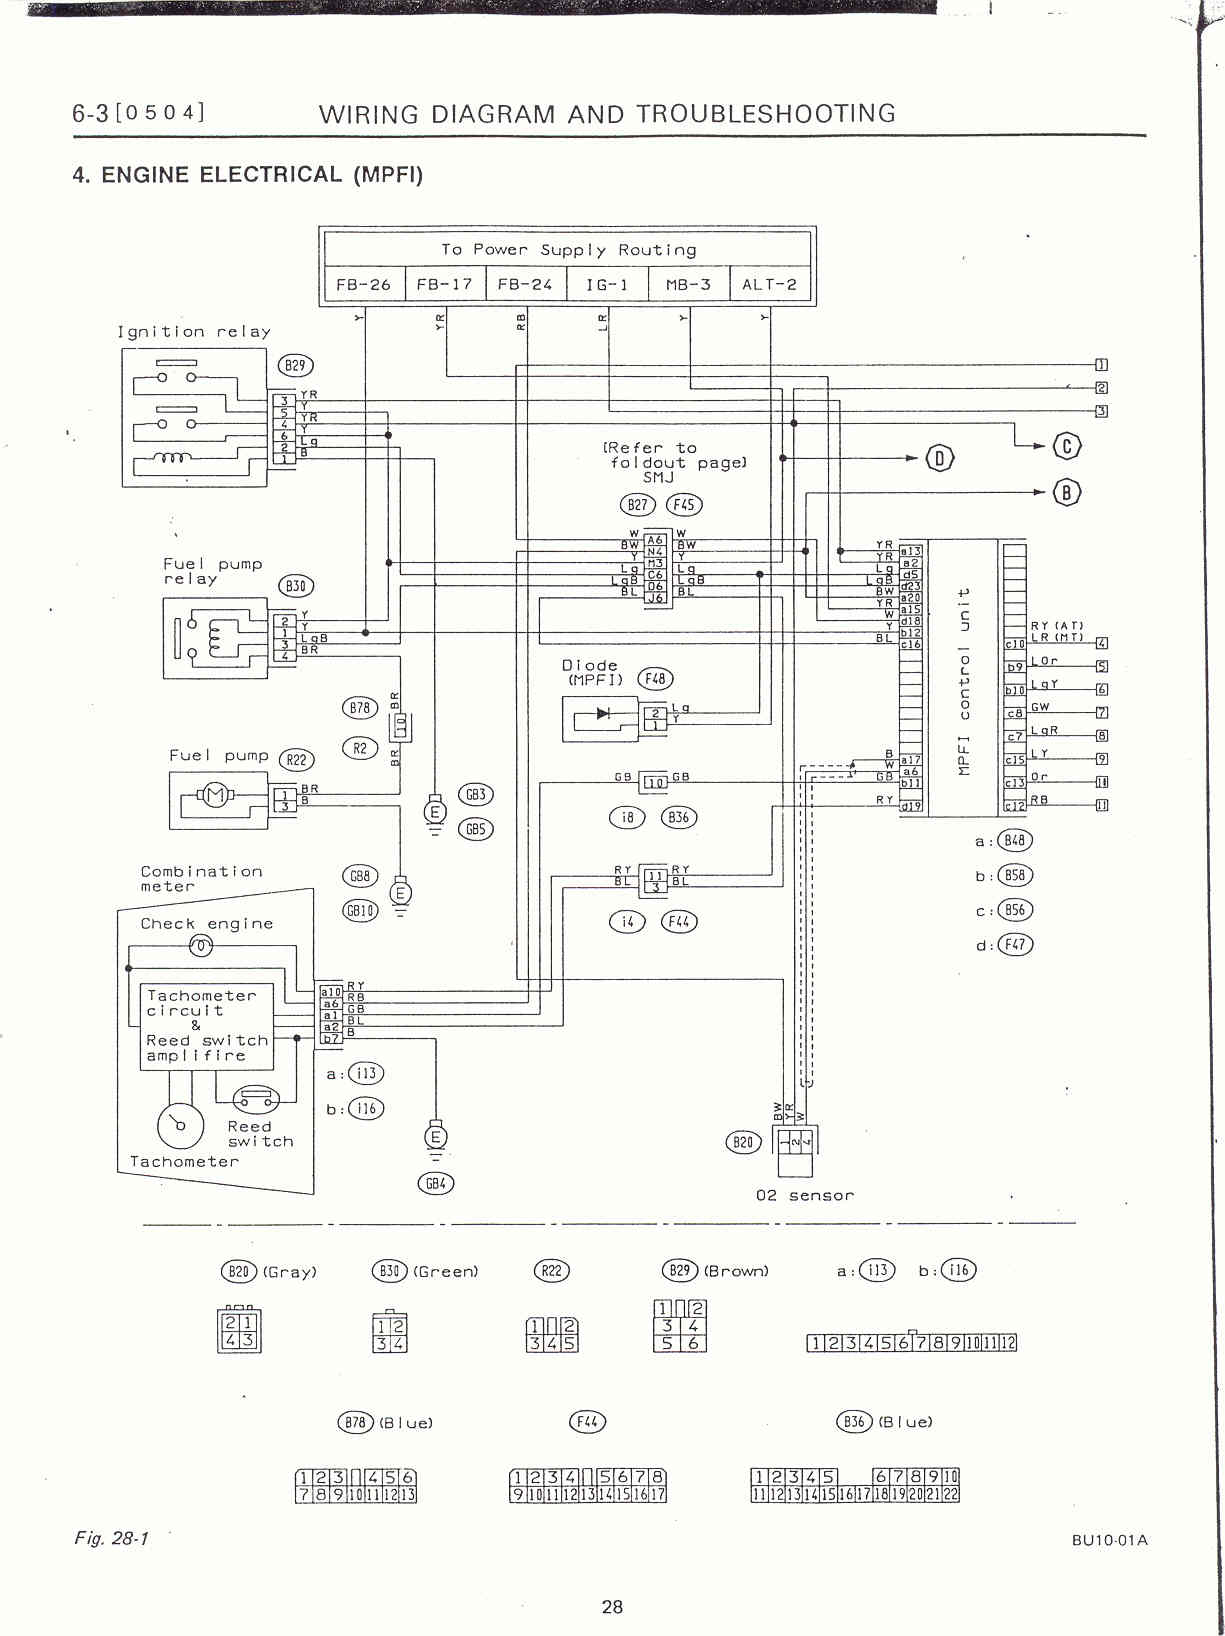 Subaru Forester Headlight Wiring Harness Diagram Stereo For 1998 Legacy Outback 1997 Diagram1997